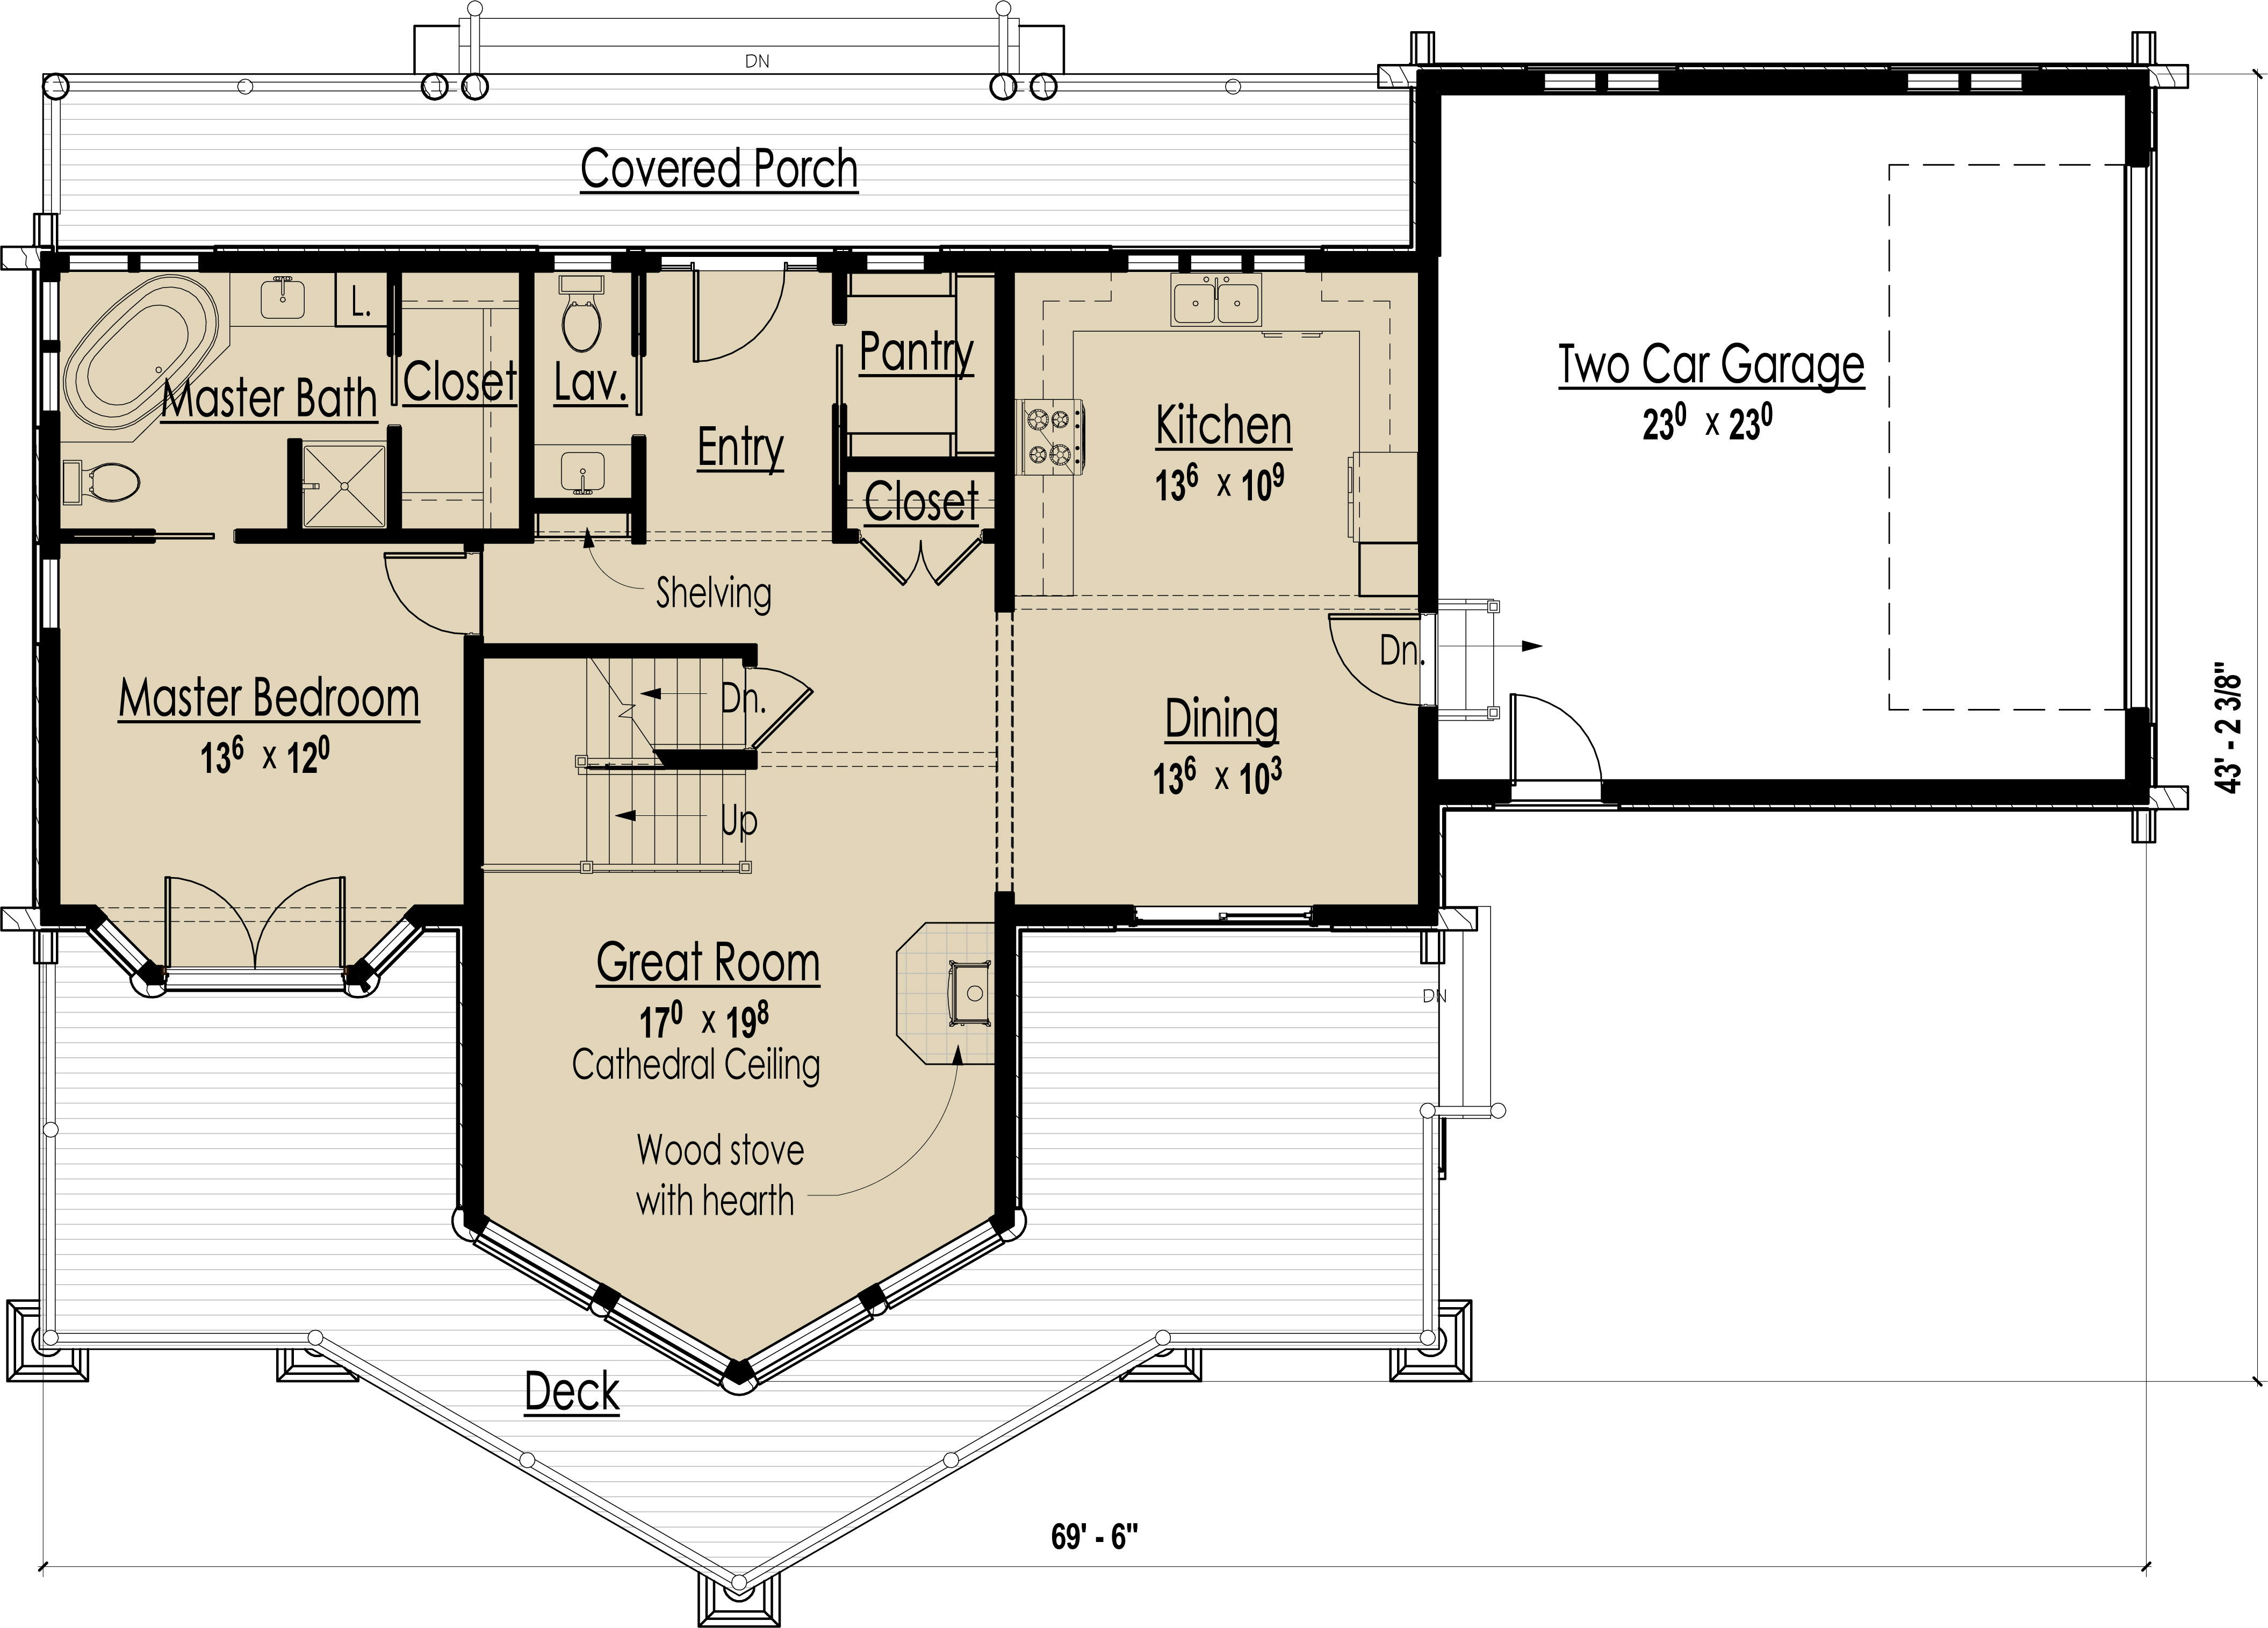 Home Design: Beautiful House Design Plans - ^